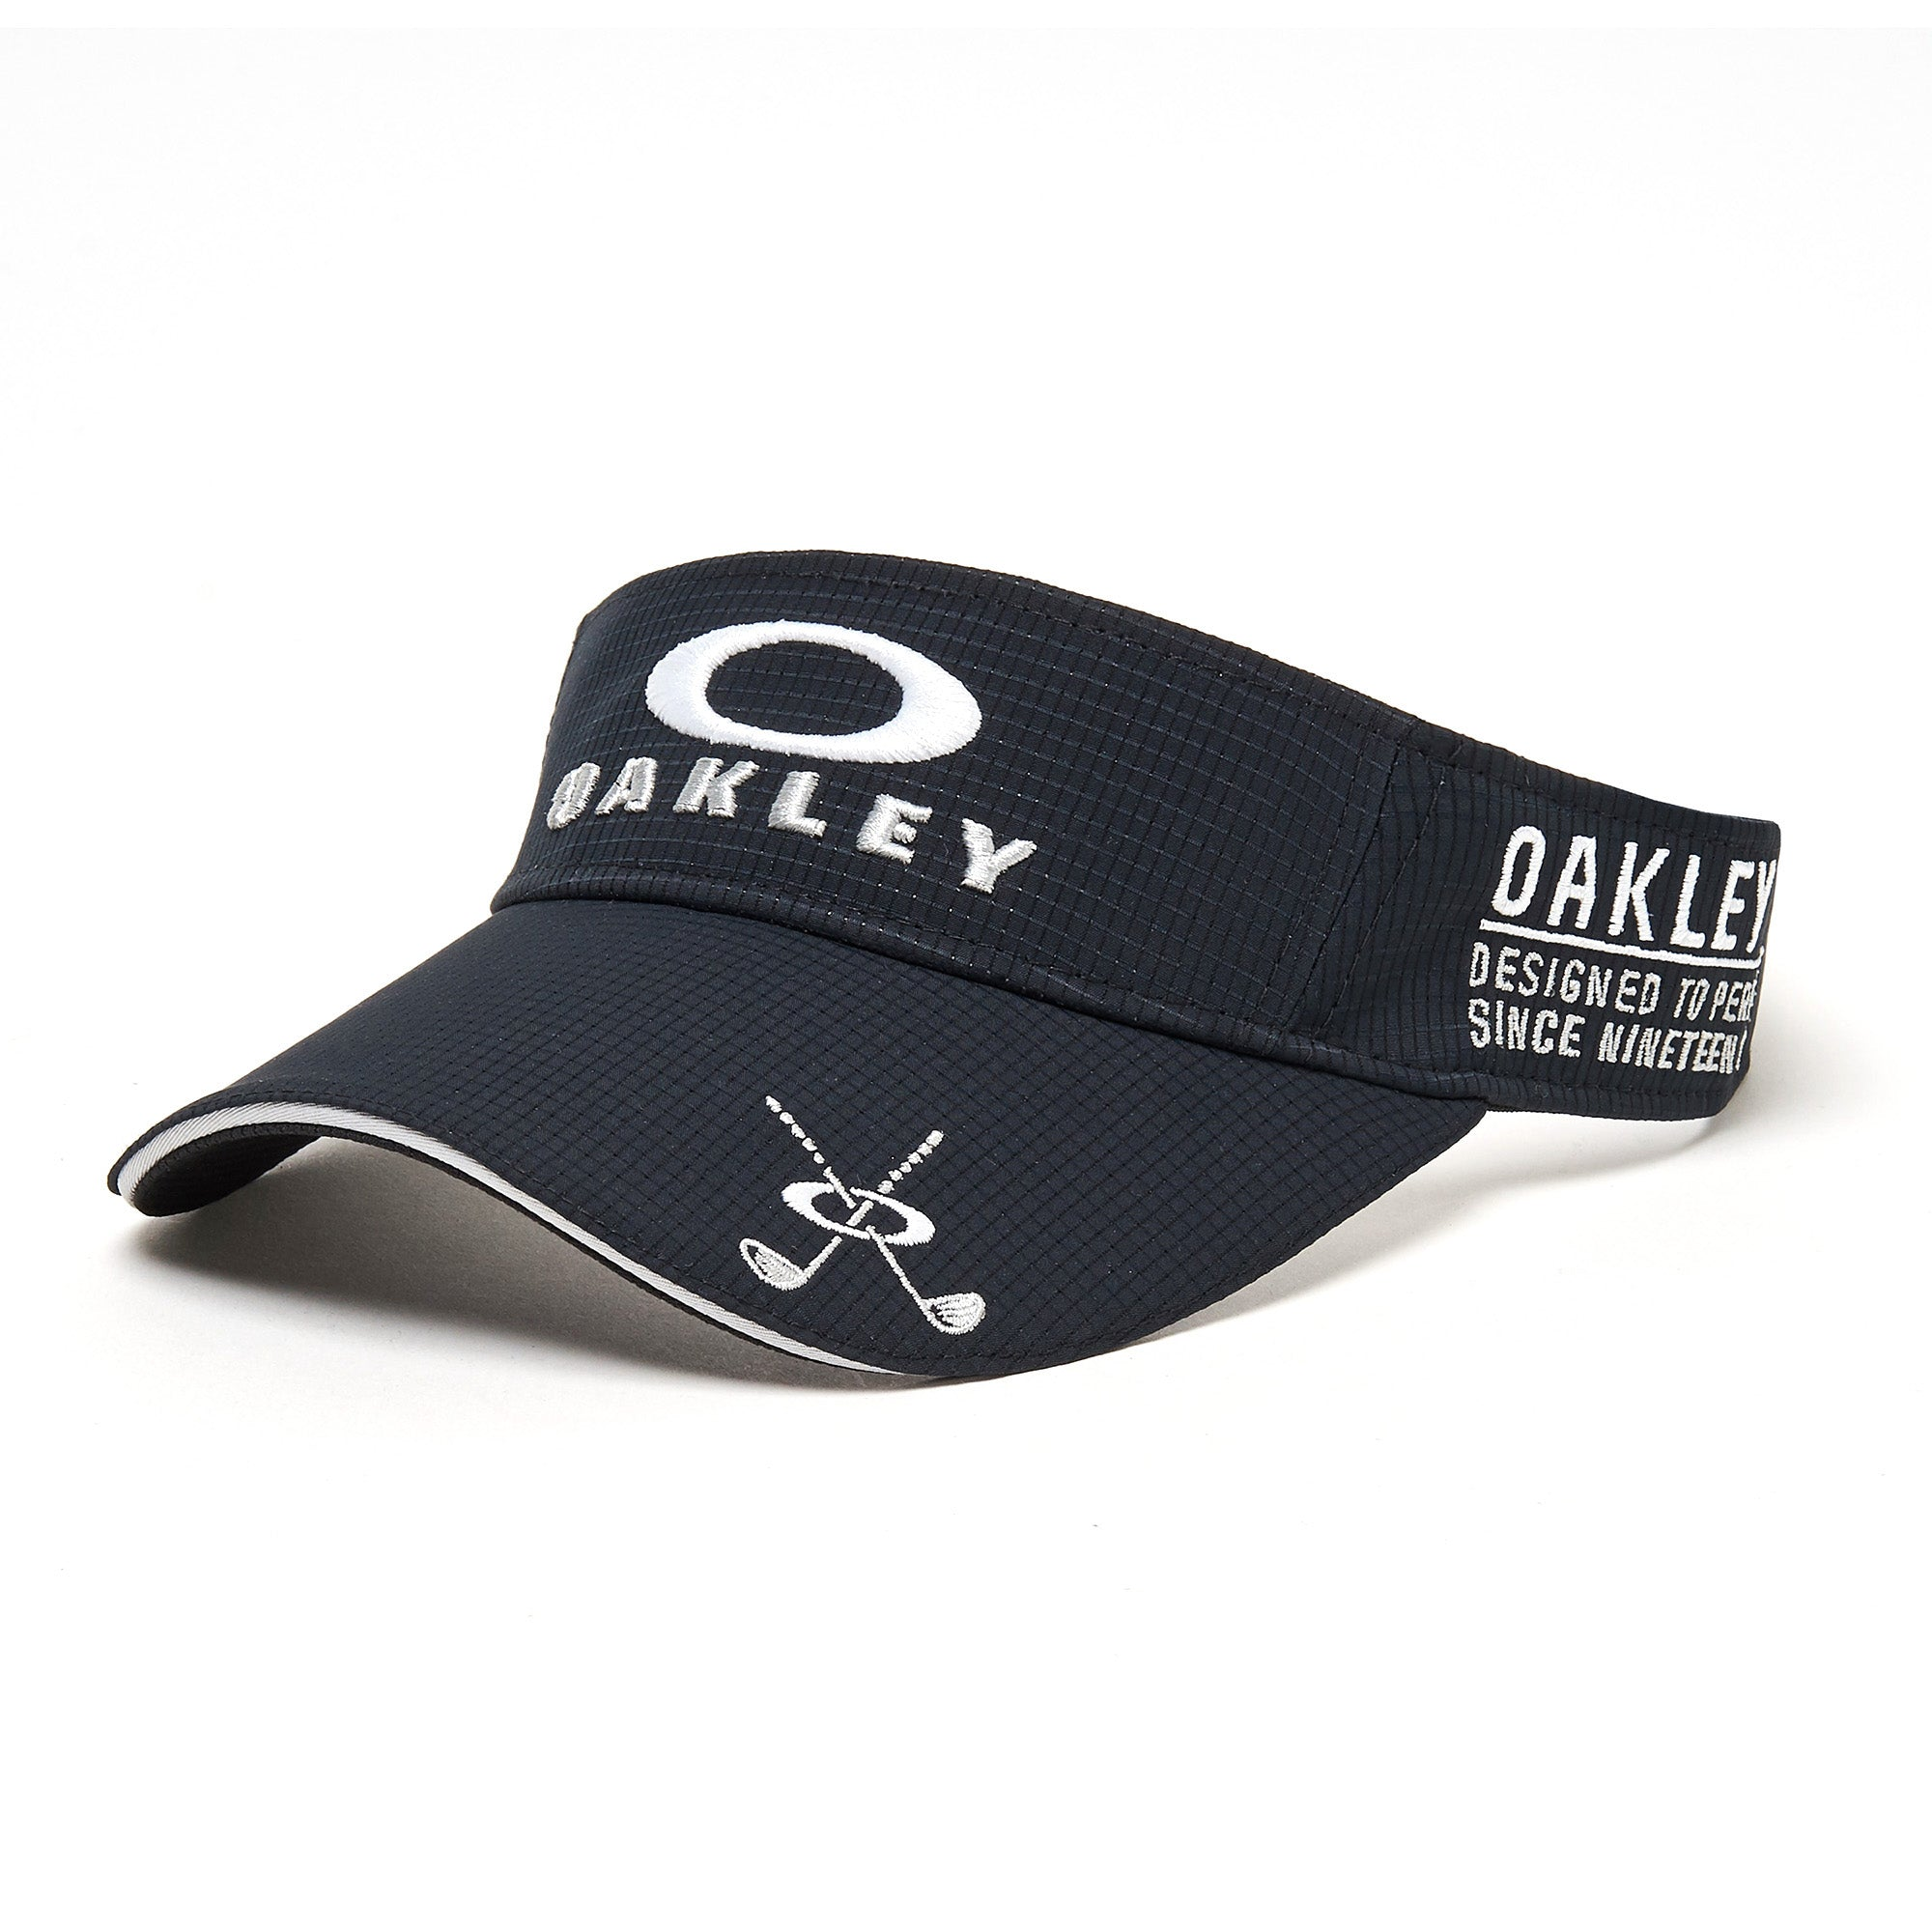 Oakley Golf Adjustable Visor